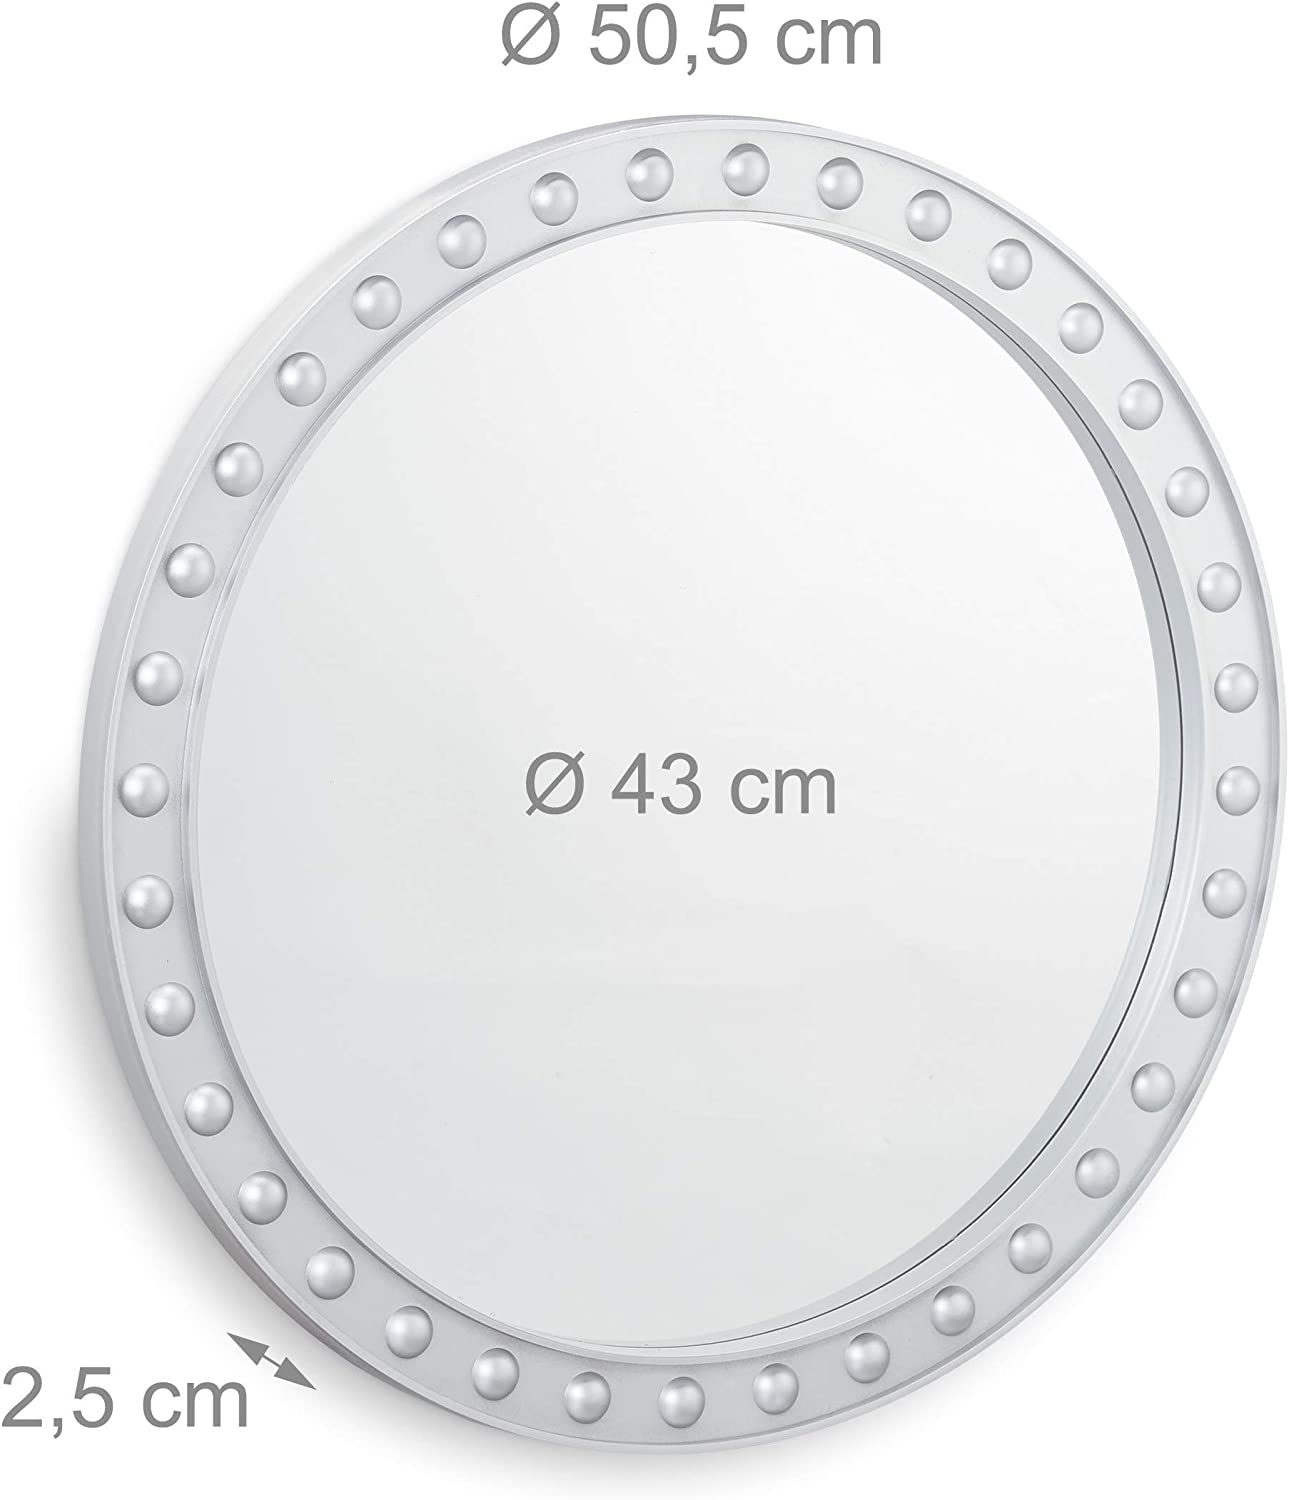 Relaxdays Round Wall Mirror, Hanging Mirror for Hallway, Living Room, Bathroom, ∅ app. 50.5cm with Frame, White Silver